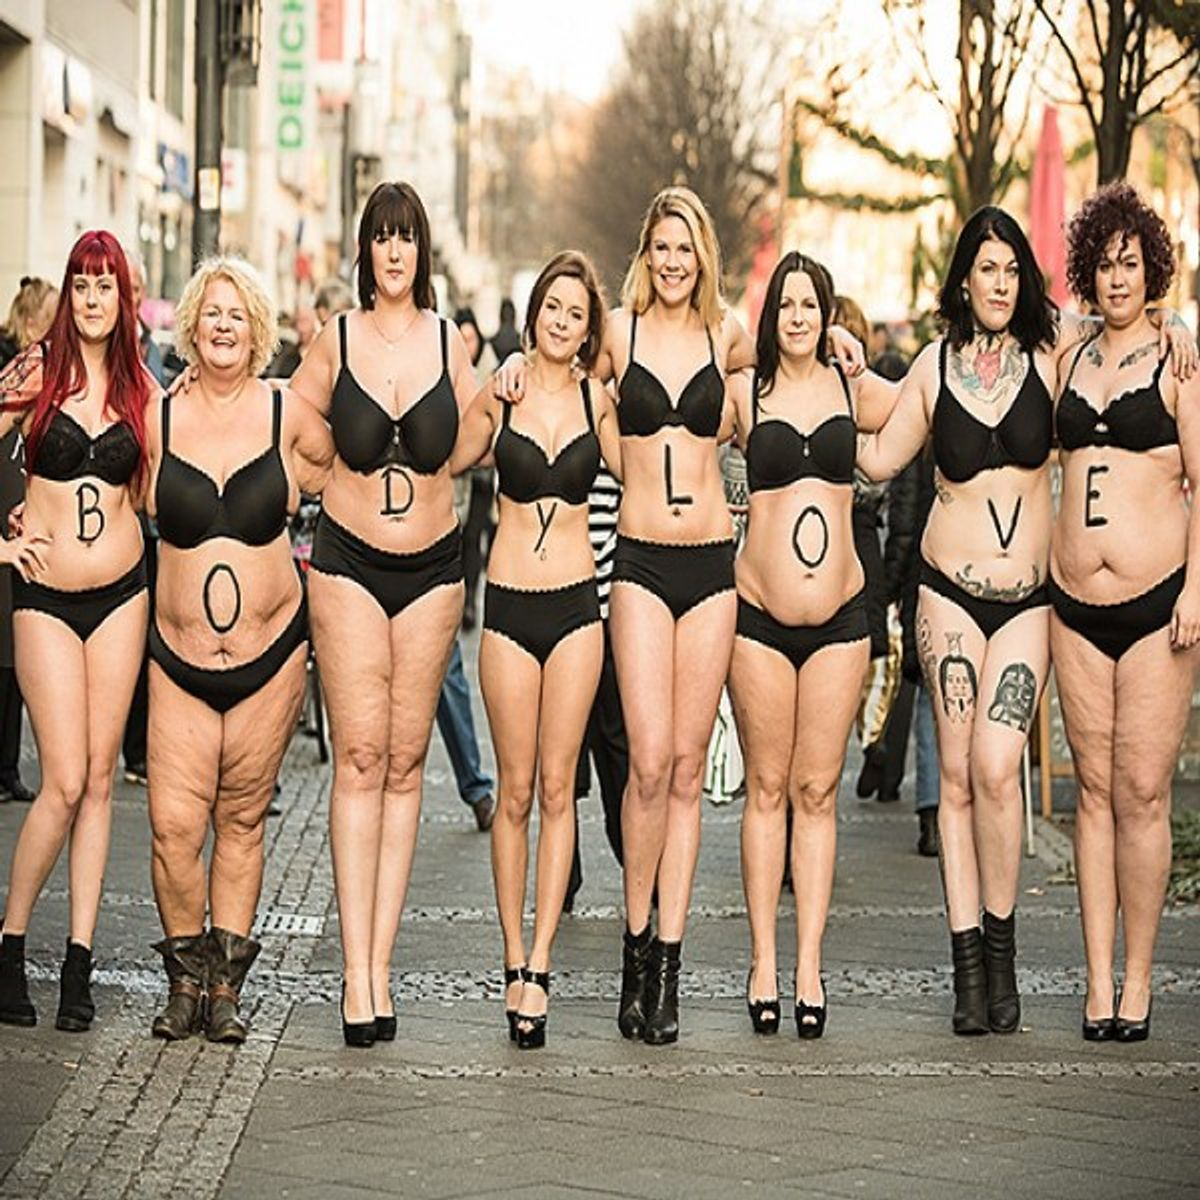 Why I Refuse To Go By Beauty Standards